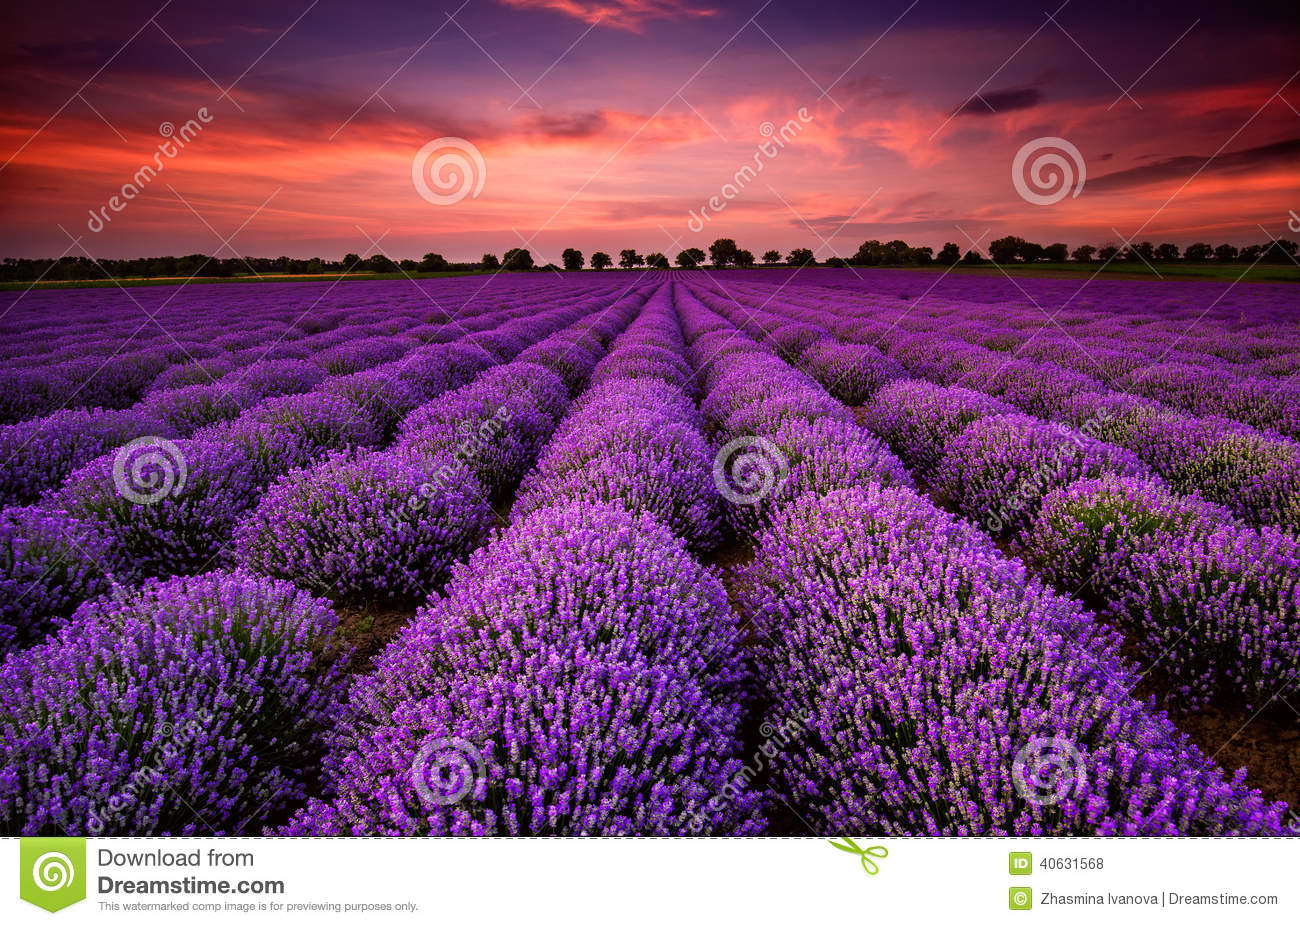 Fall Color Wallpaper For Desktop Lavender Field At Sunset Stock Photo Image 40631568